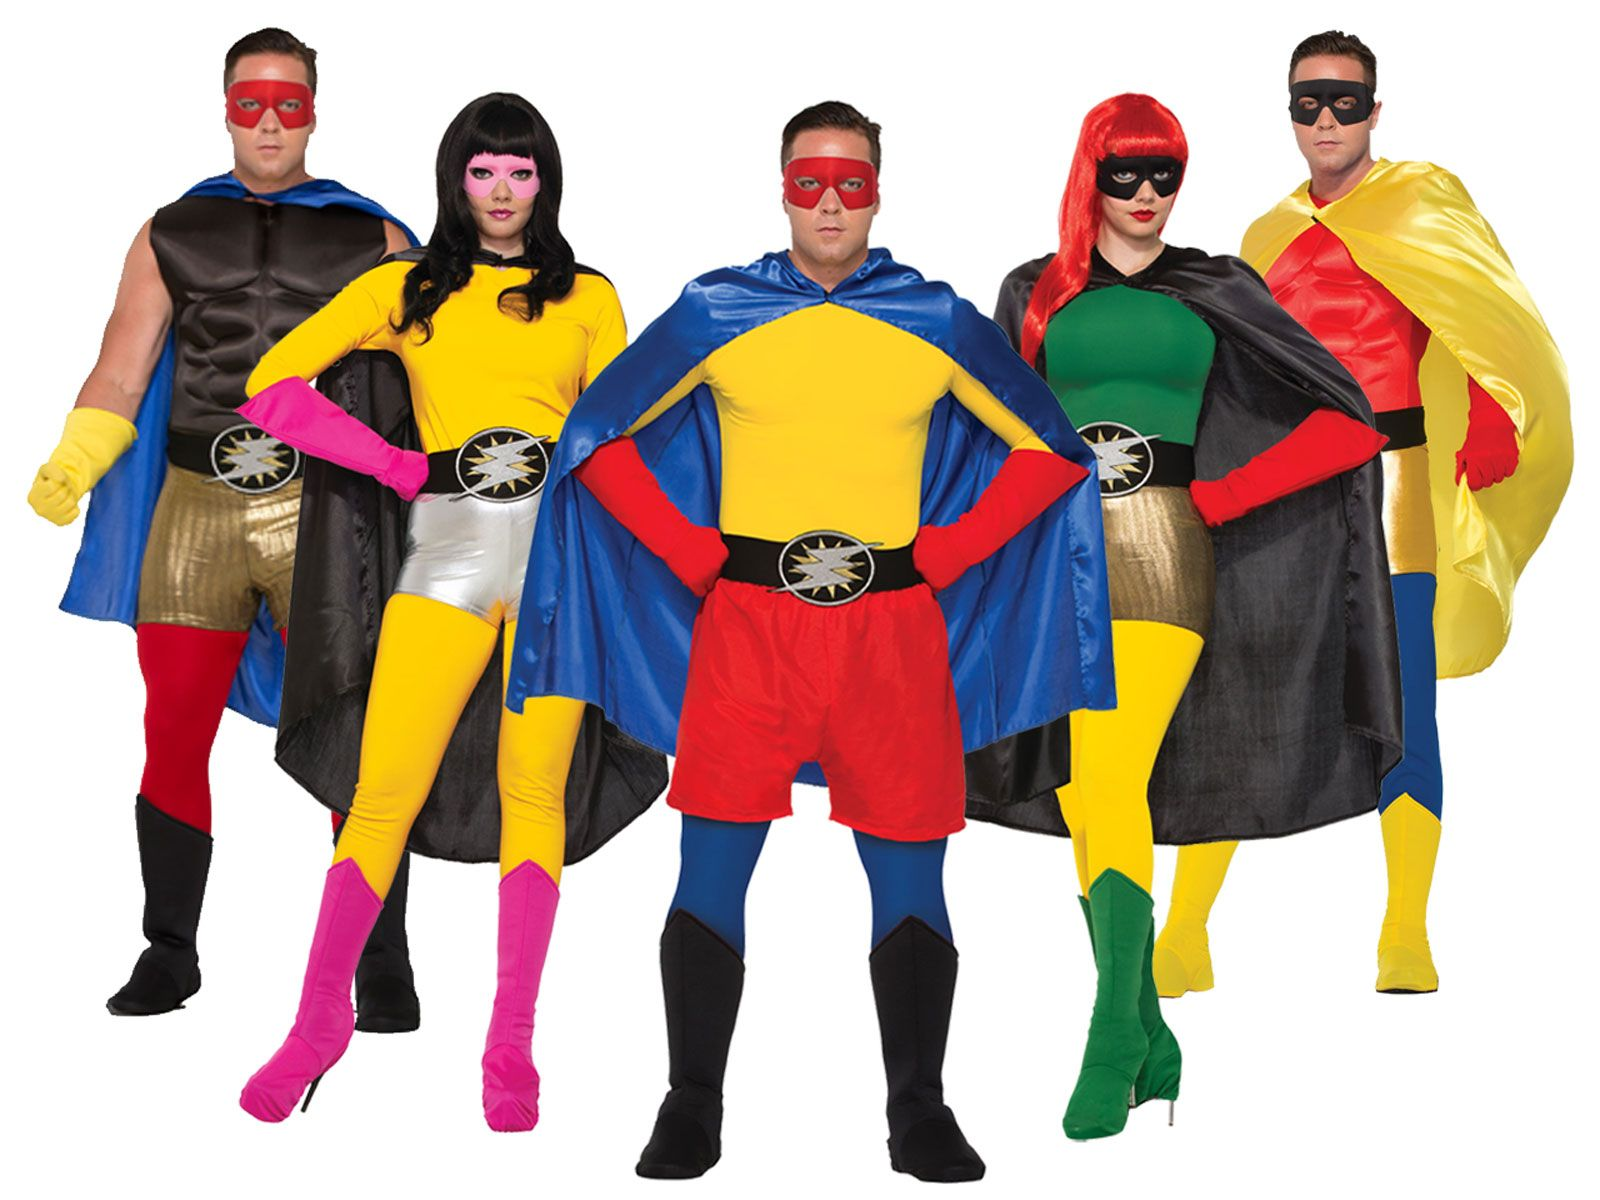 Adults Wearing Superhero Capes